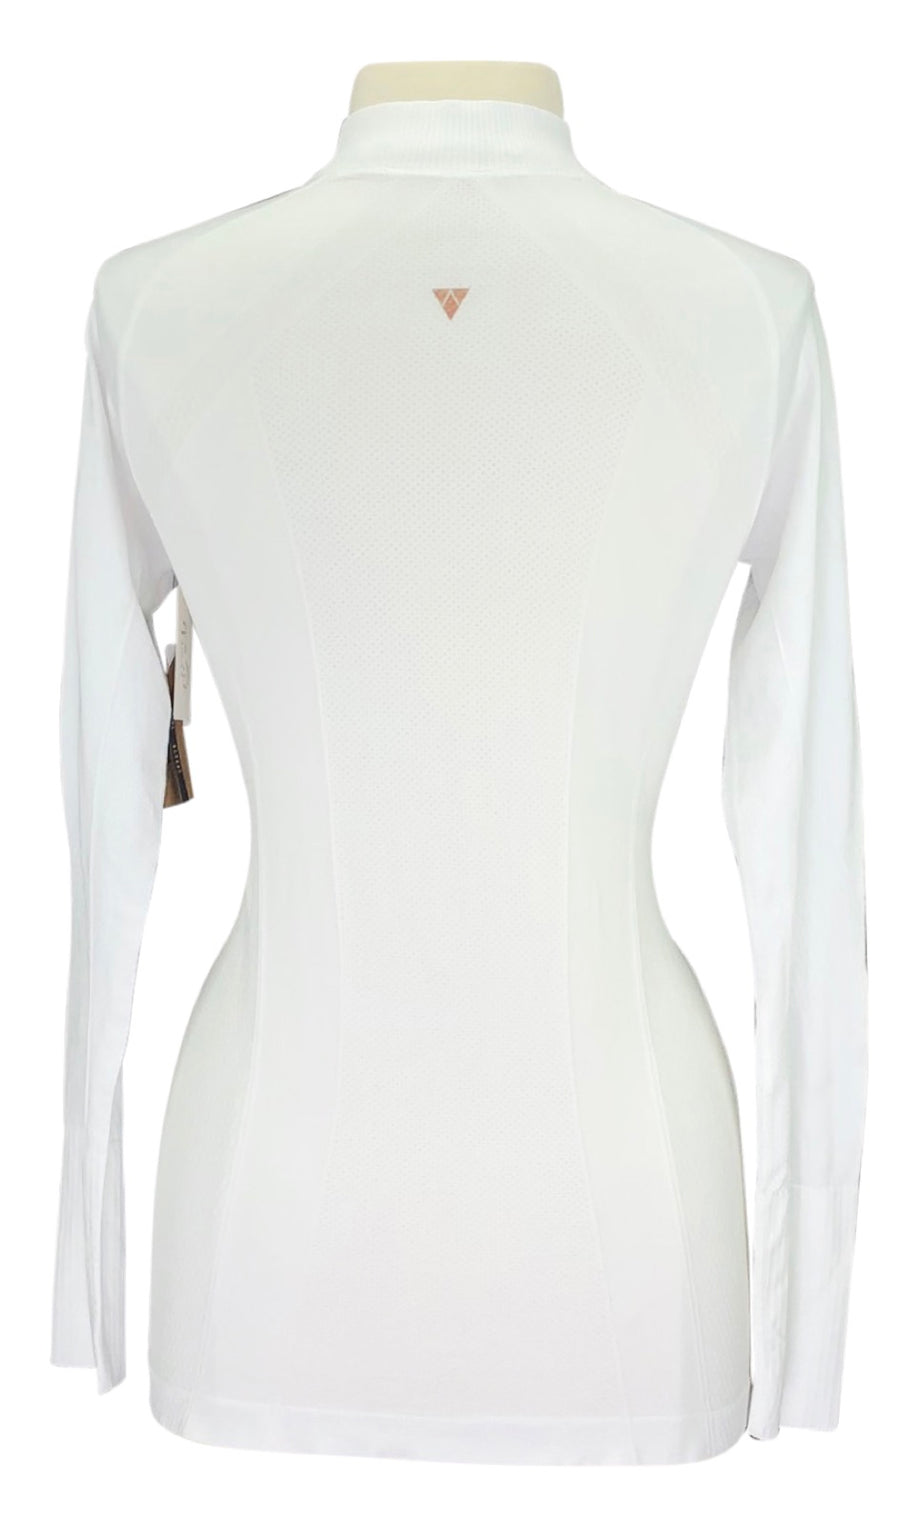 Back of Anique Signature Sun Shirt in Pure White with logo